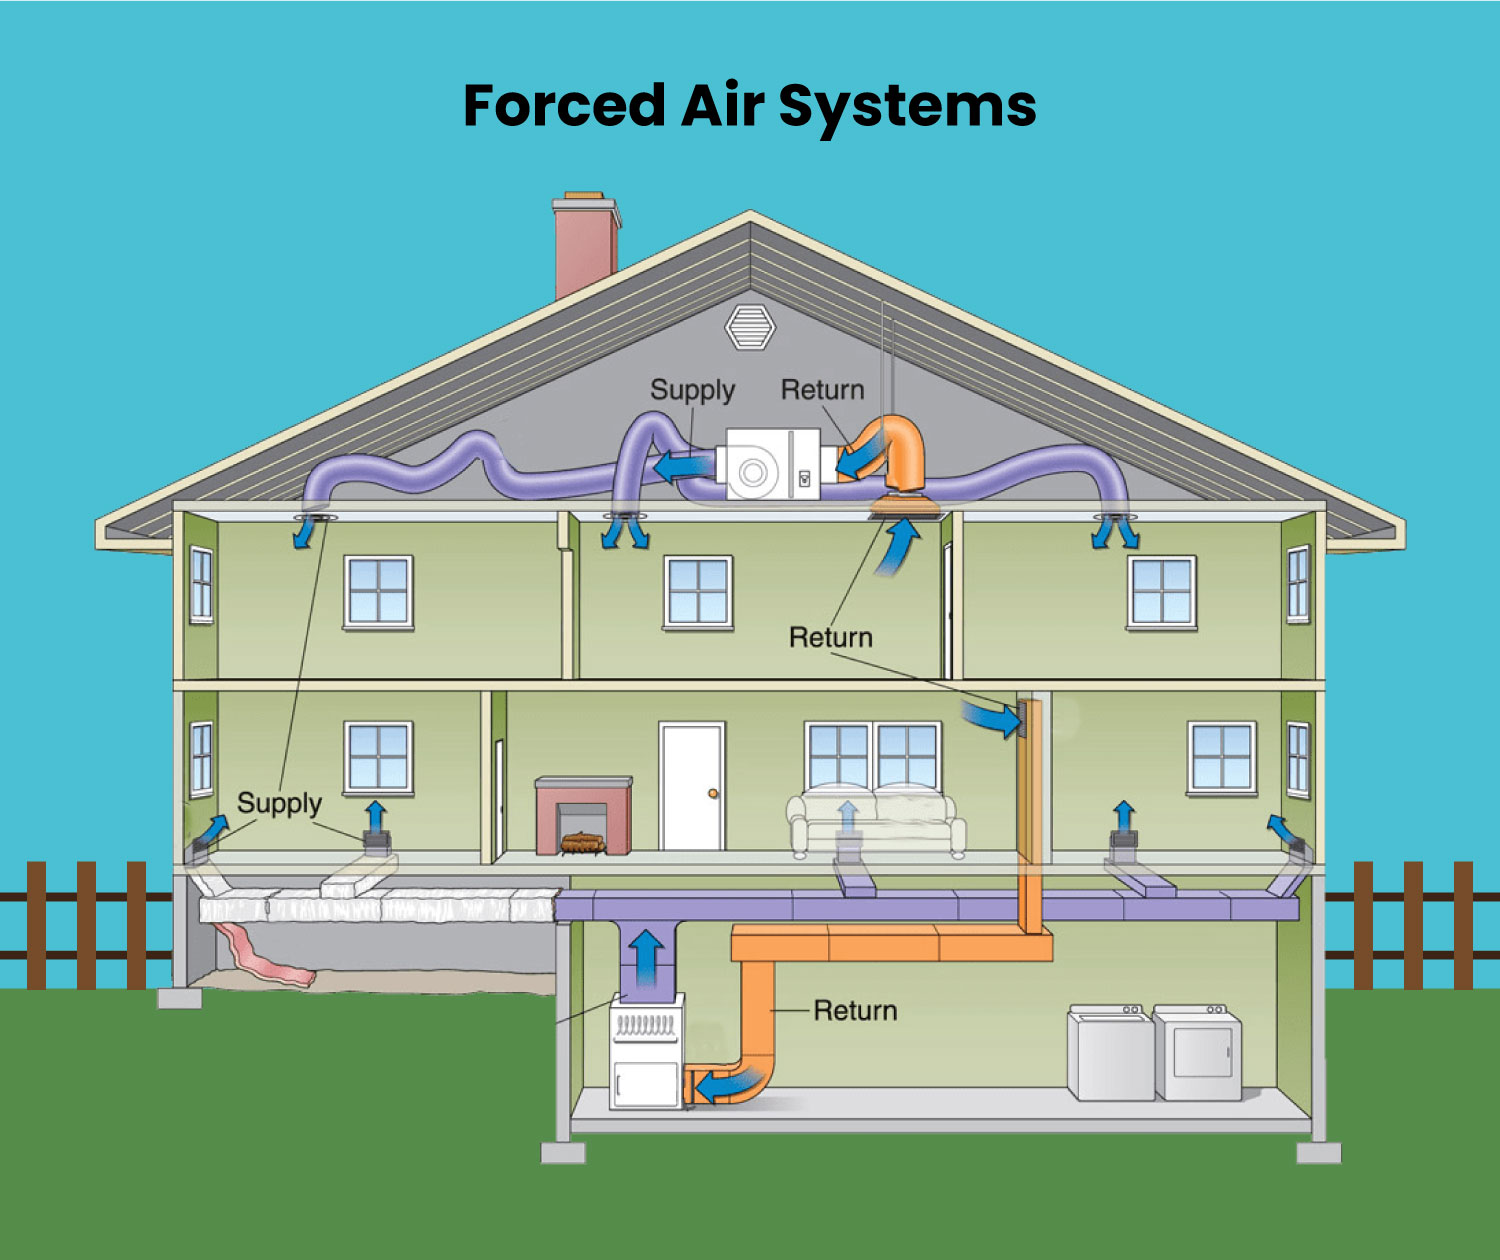 Forced air systems in a residential home.